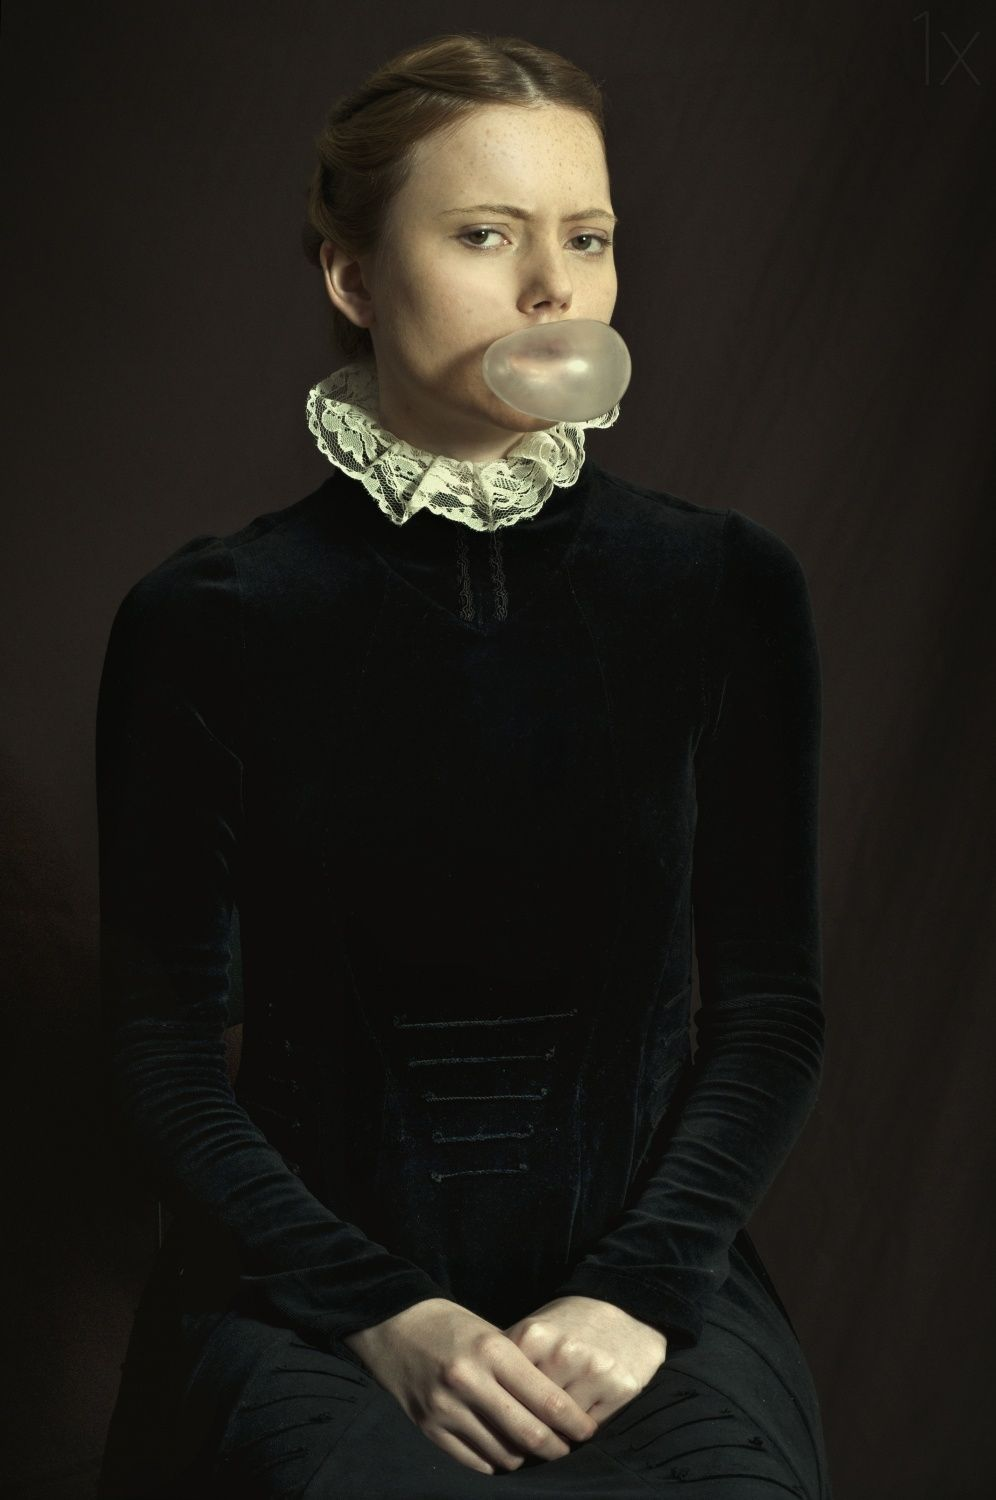 1X - How would have been? by Romina Ressia